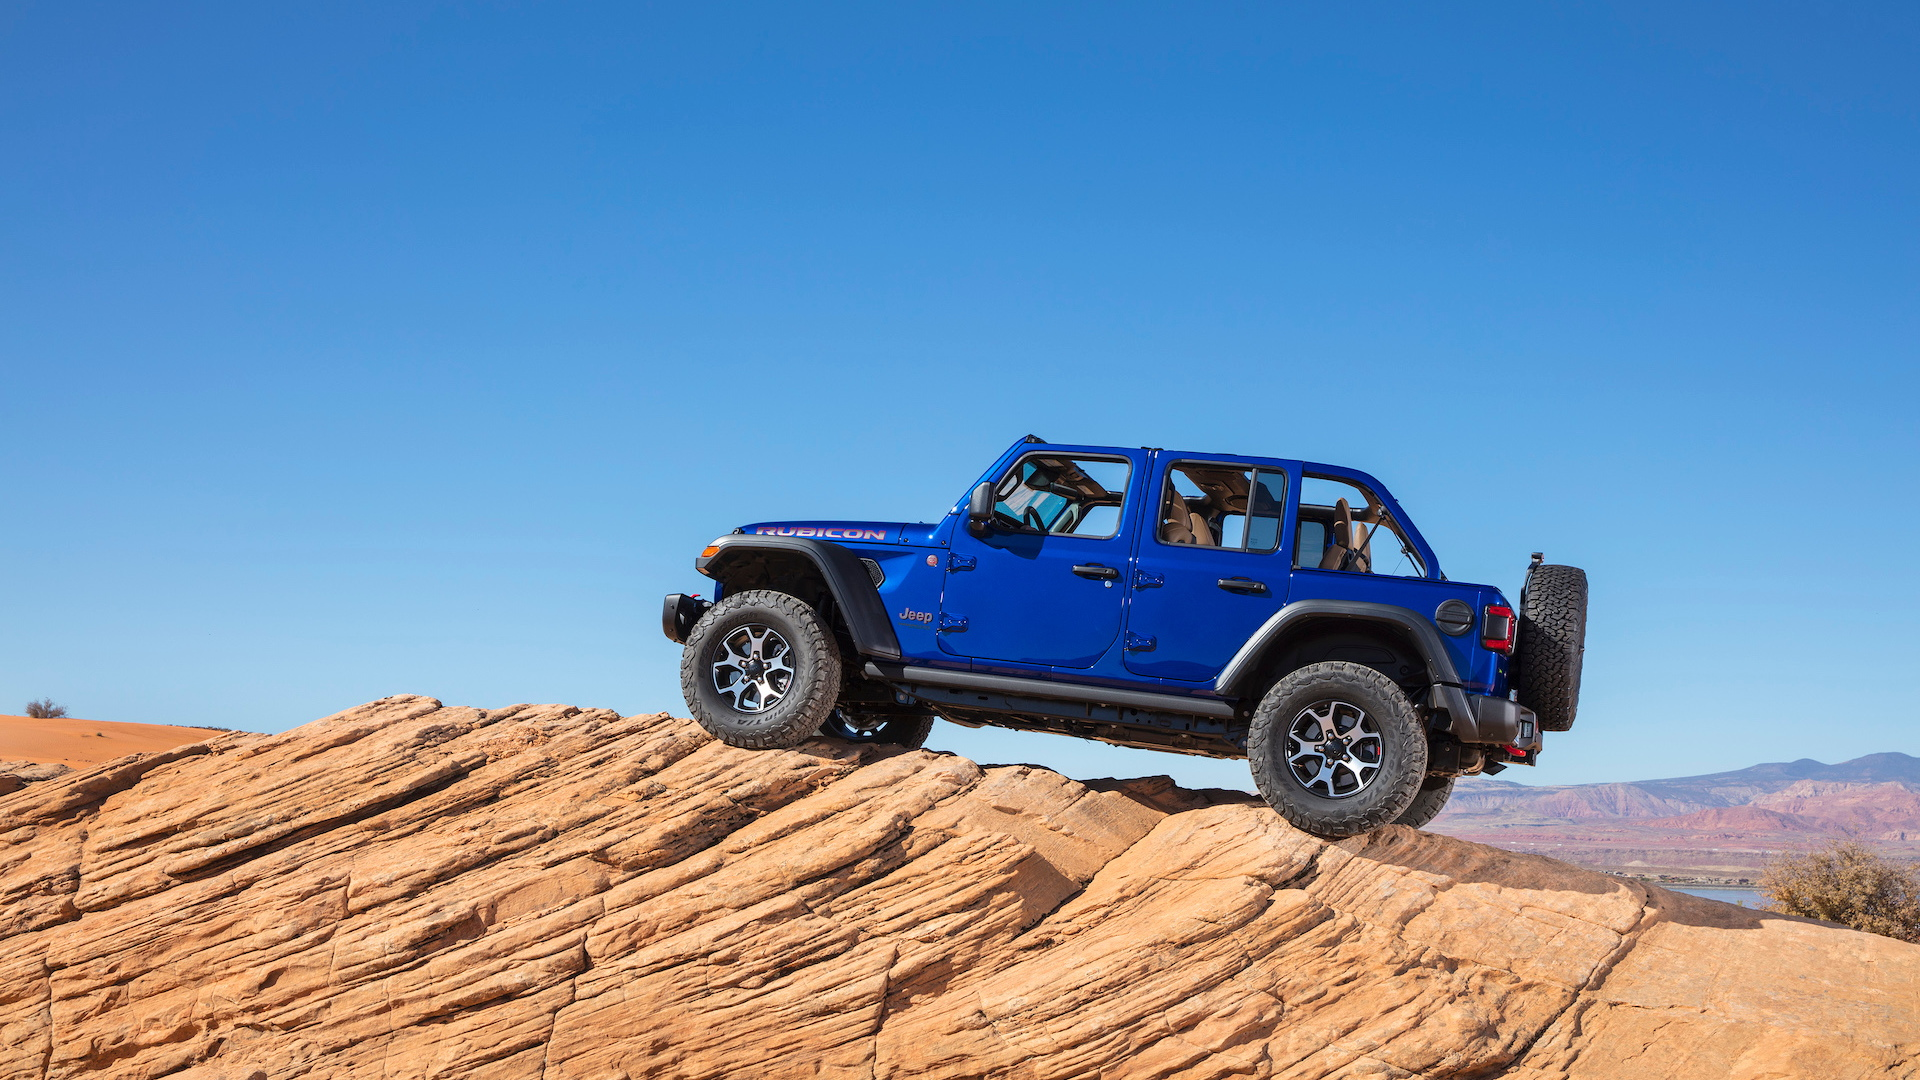 2020 Jeep Wrangler News Diesel Phev Price >> 2020 Jeep Wrangler Diesel Rated 25 Mpg Plug In Hybrid On